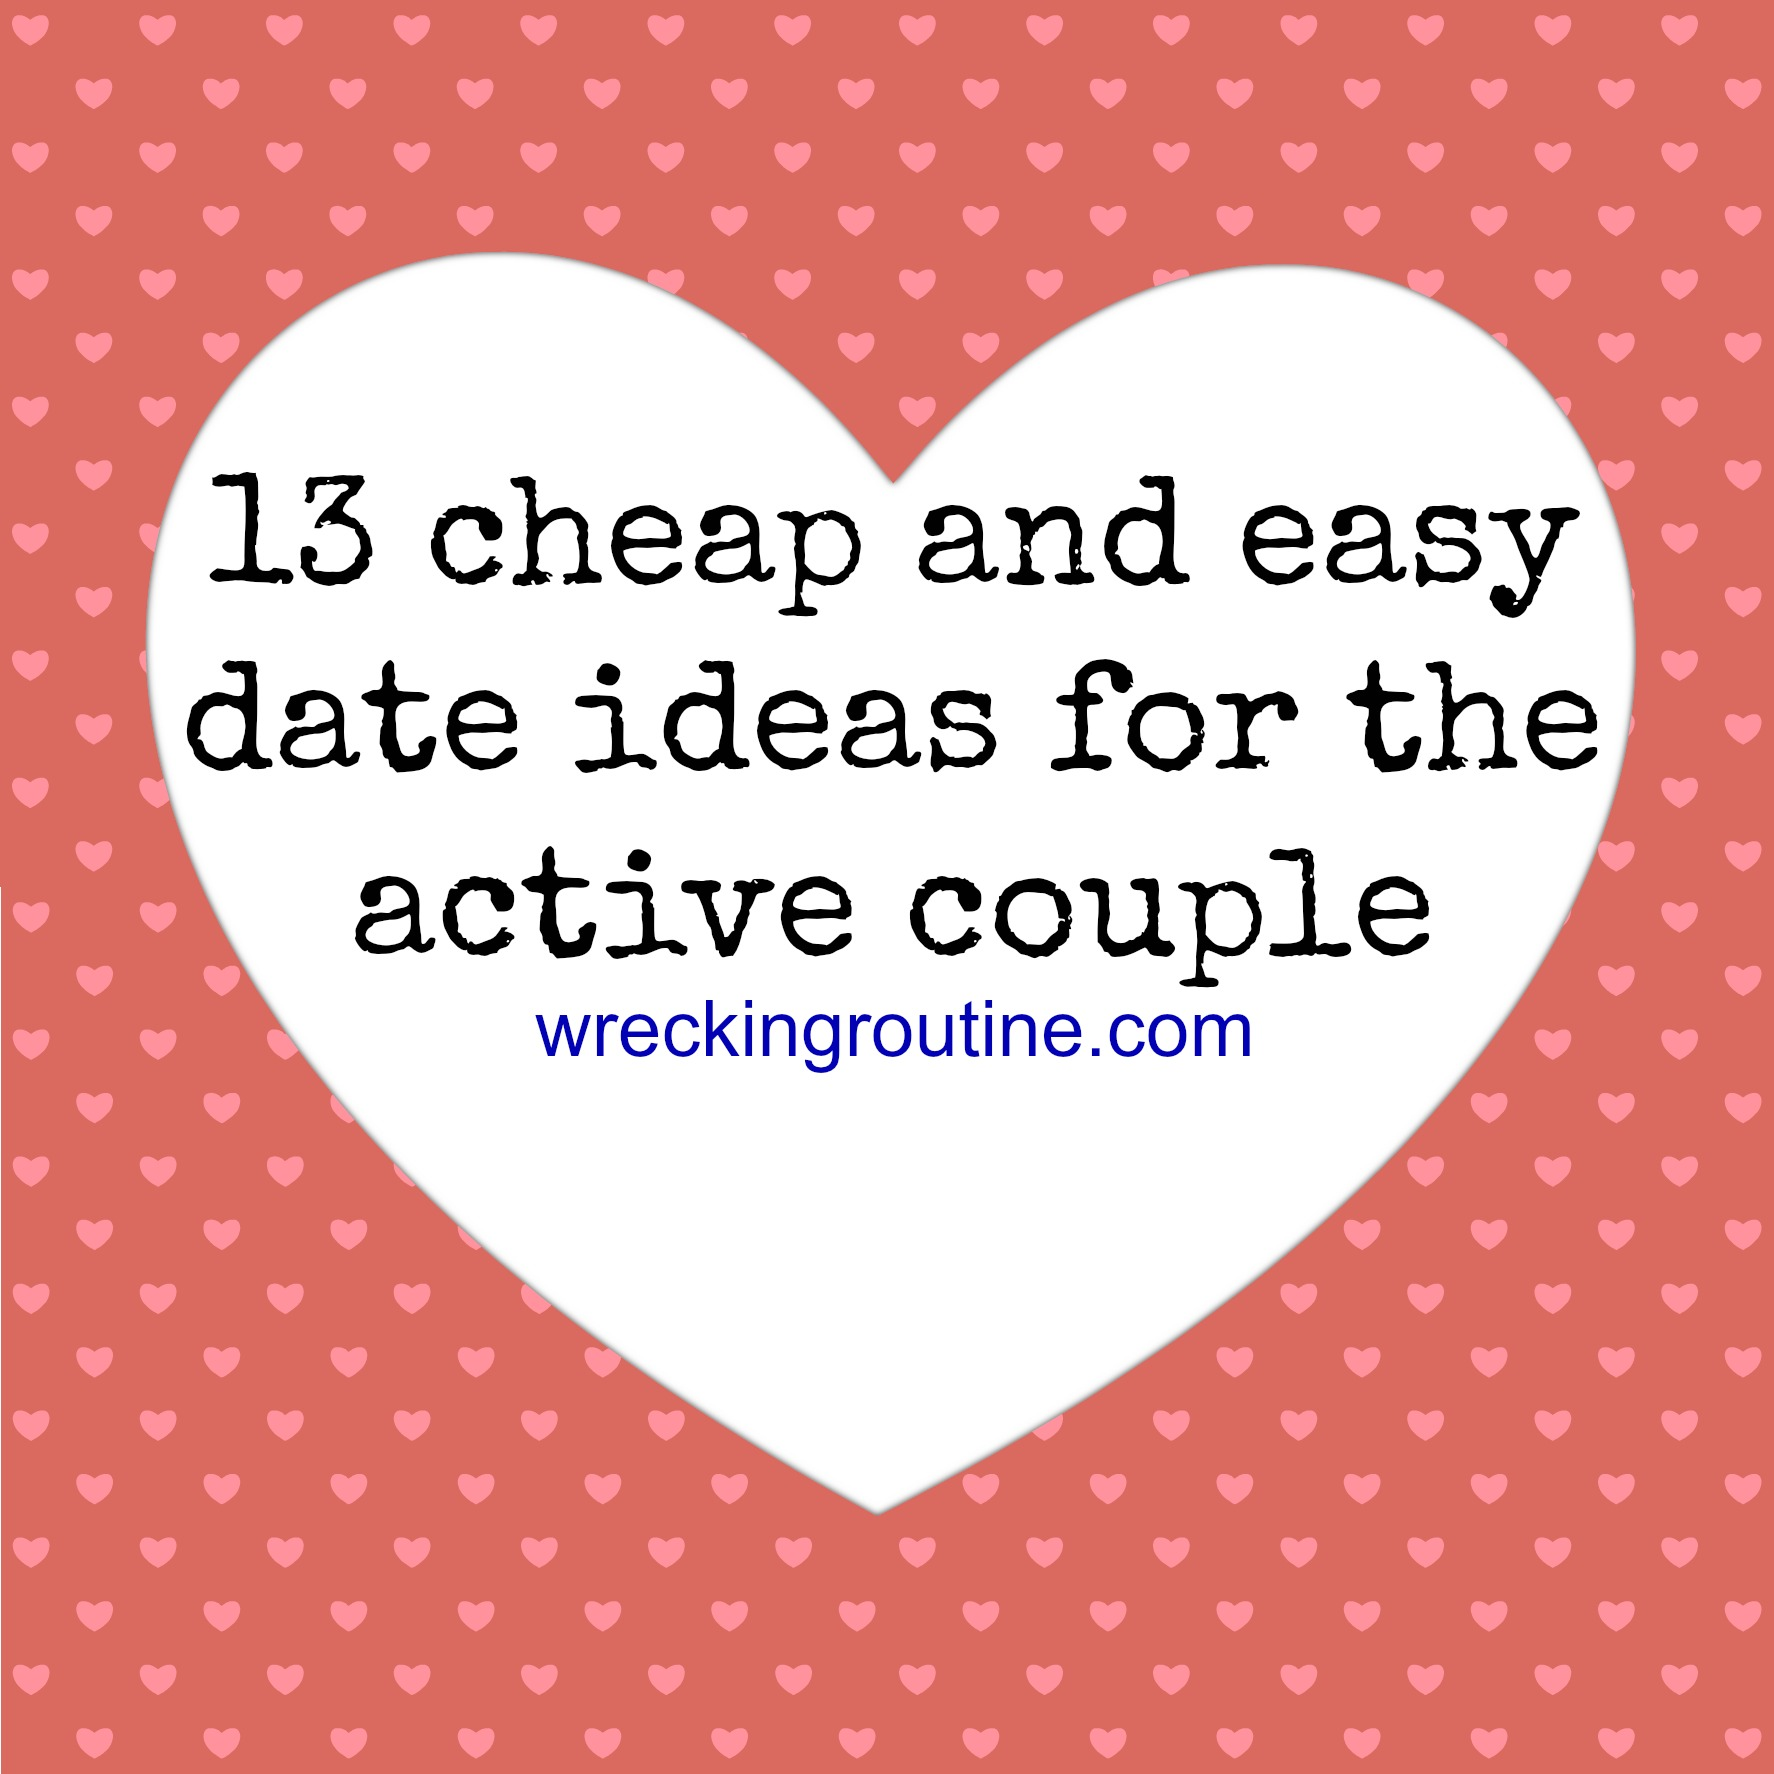 13 Cheap and Easy Date Ideas for the Active Couple - Wrecking Routine